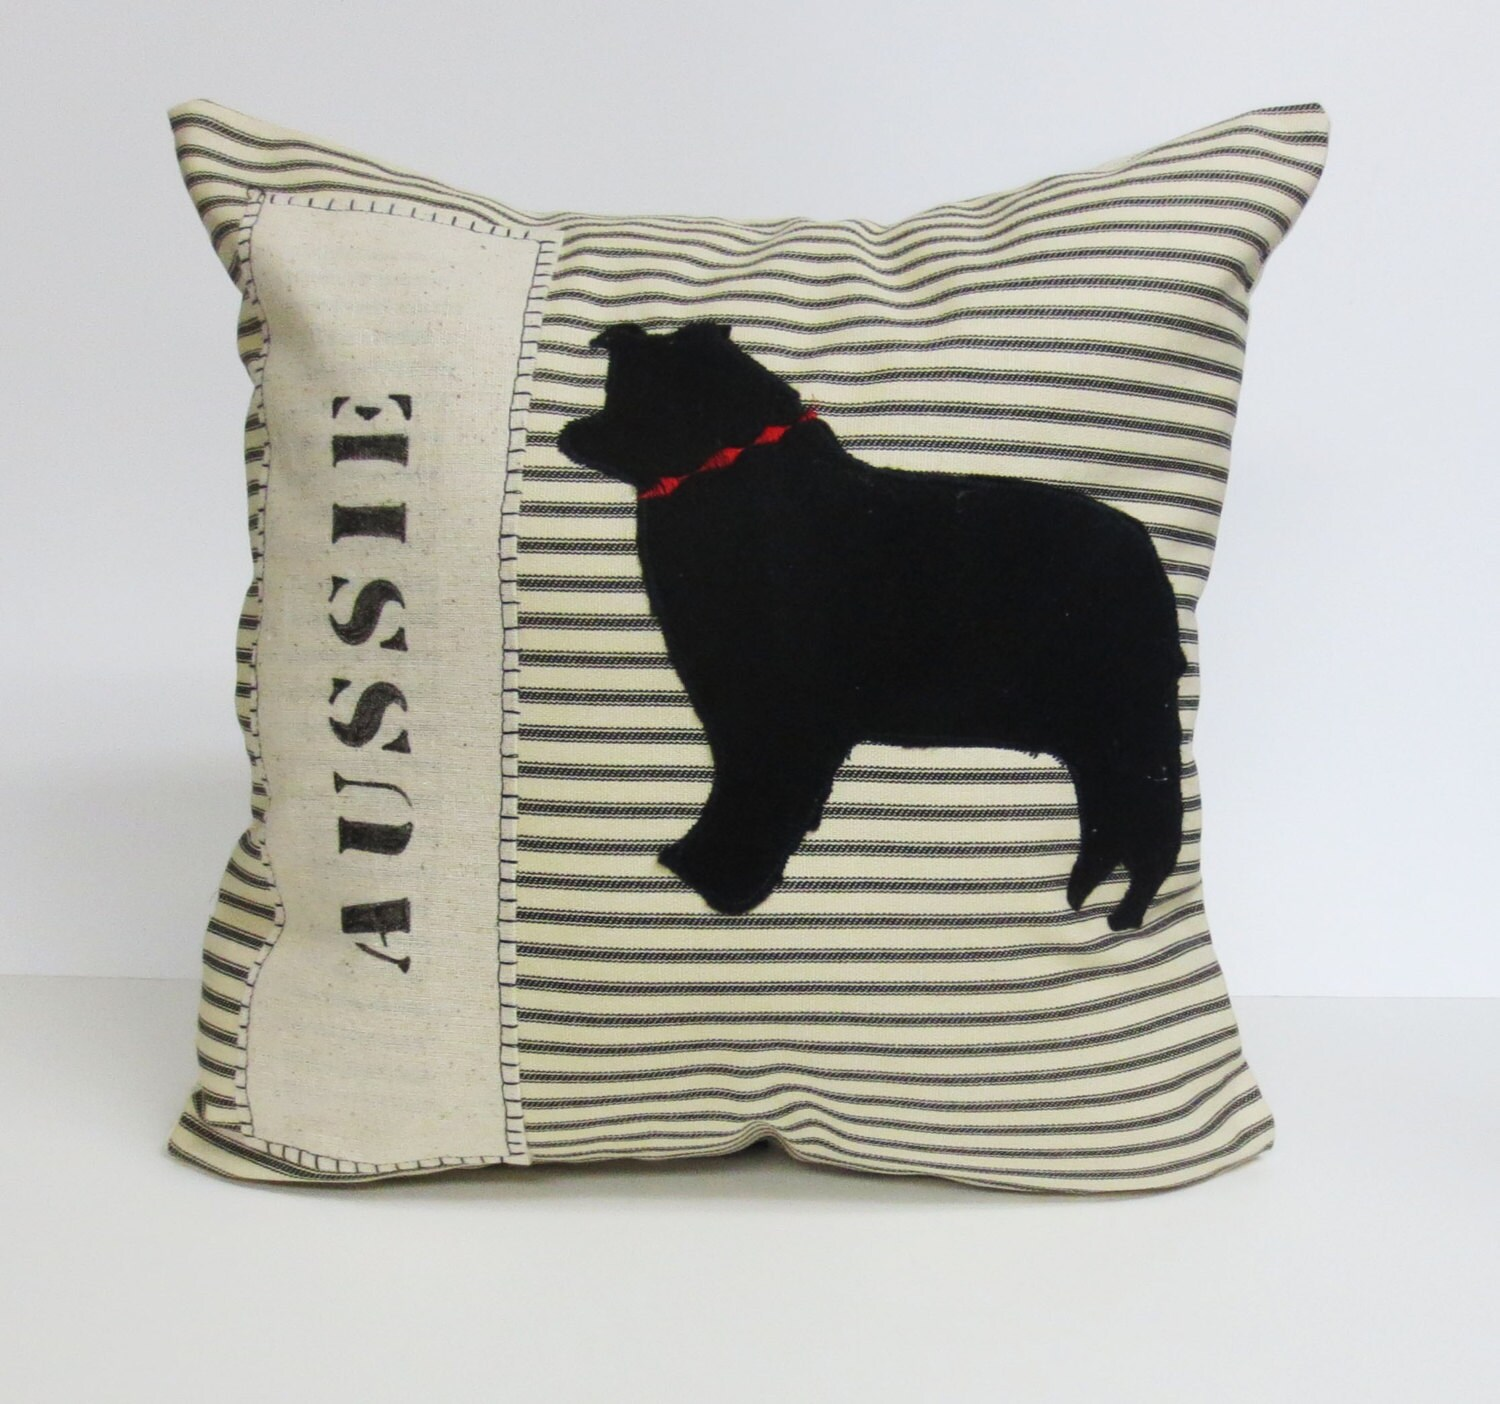 Decorative Pillow With Dog : Felt Australian Shepherd Dog Pillow Decorative Accent